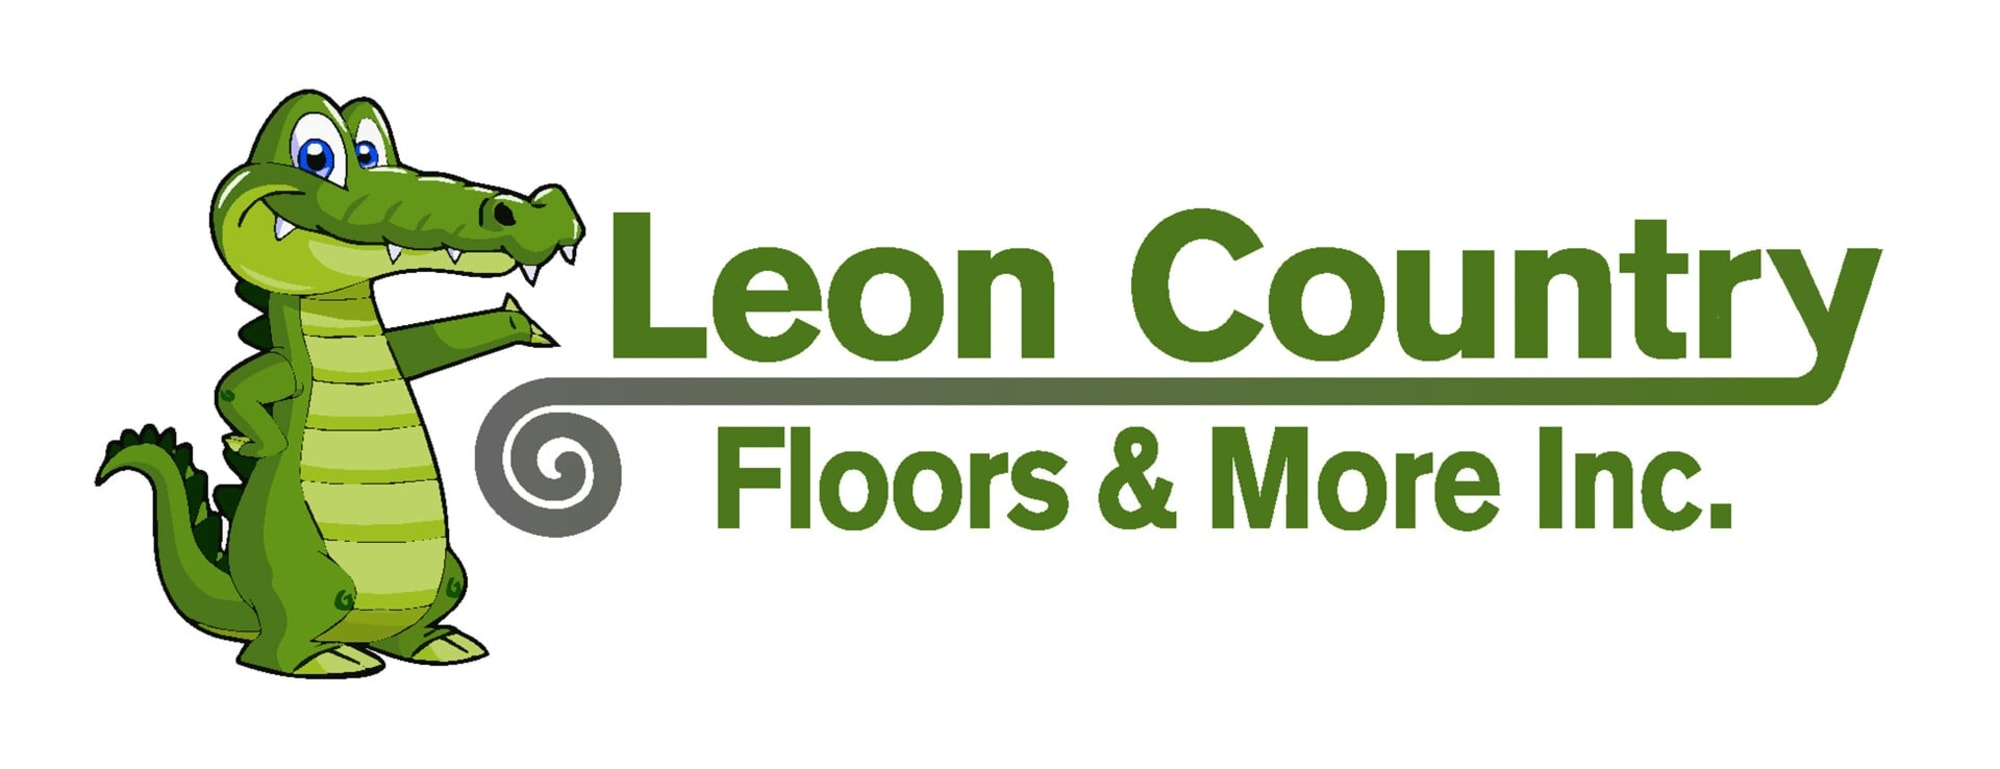 Leon Country Floors & More Inc. - 20548 WI-27 Sparta, WI 54656